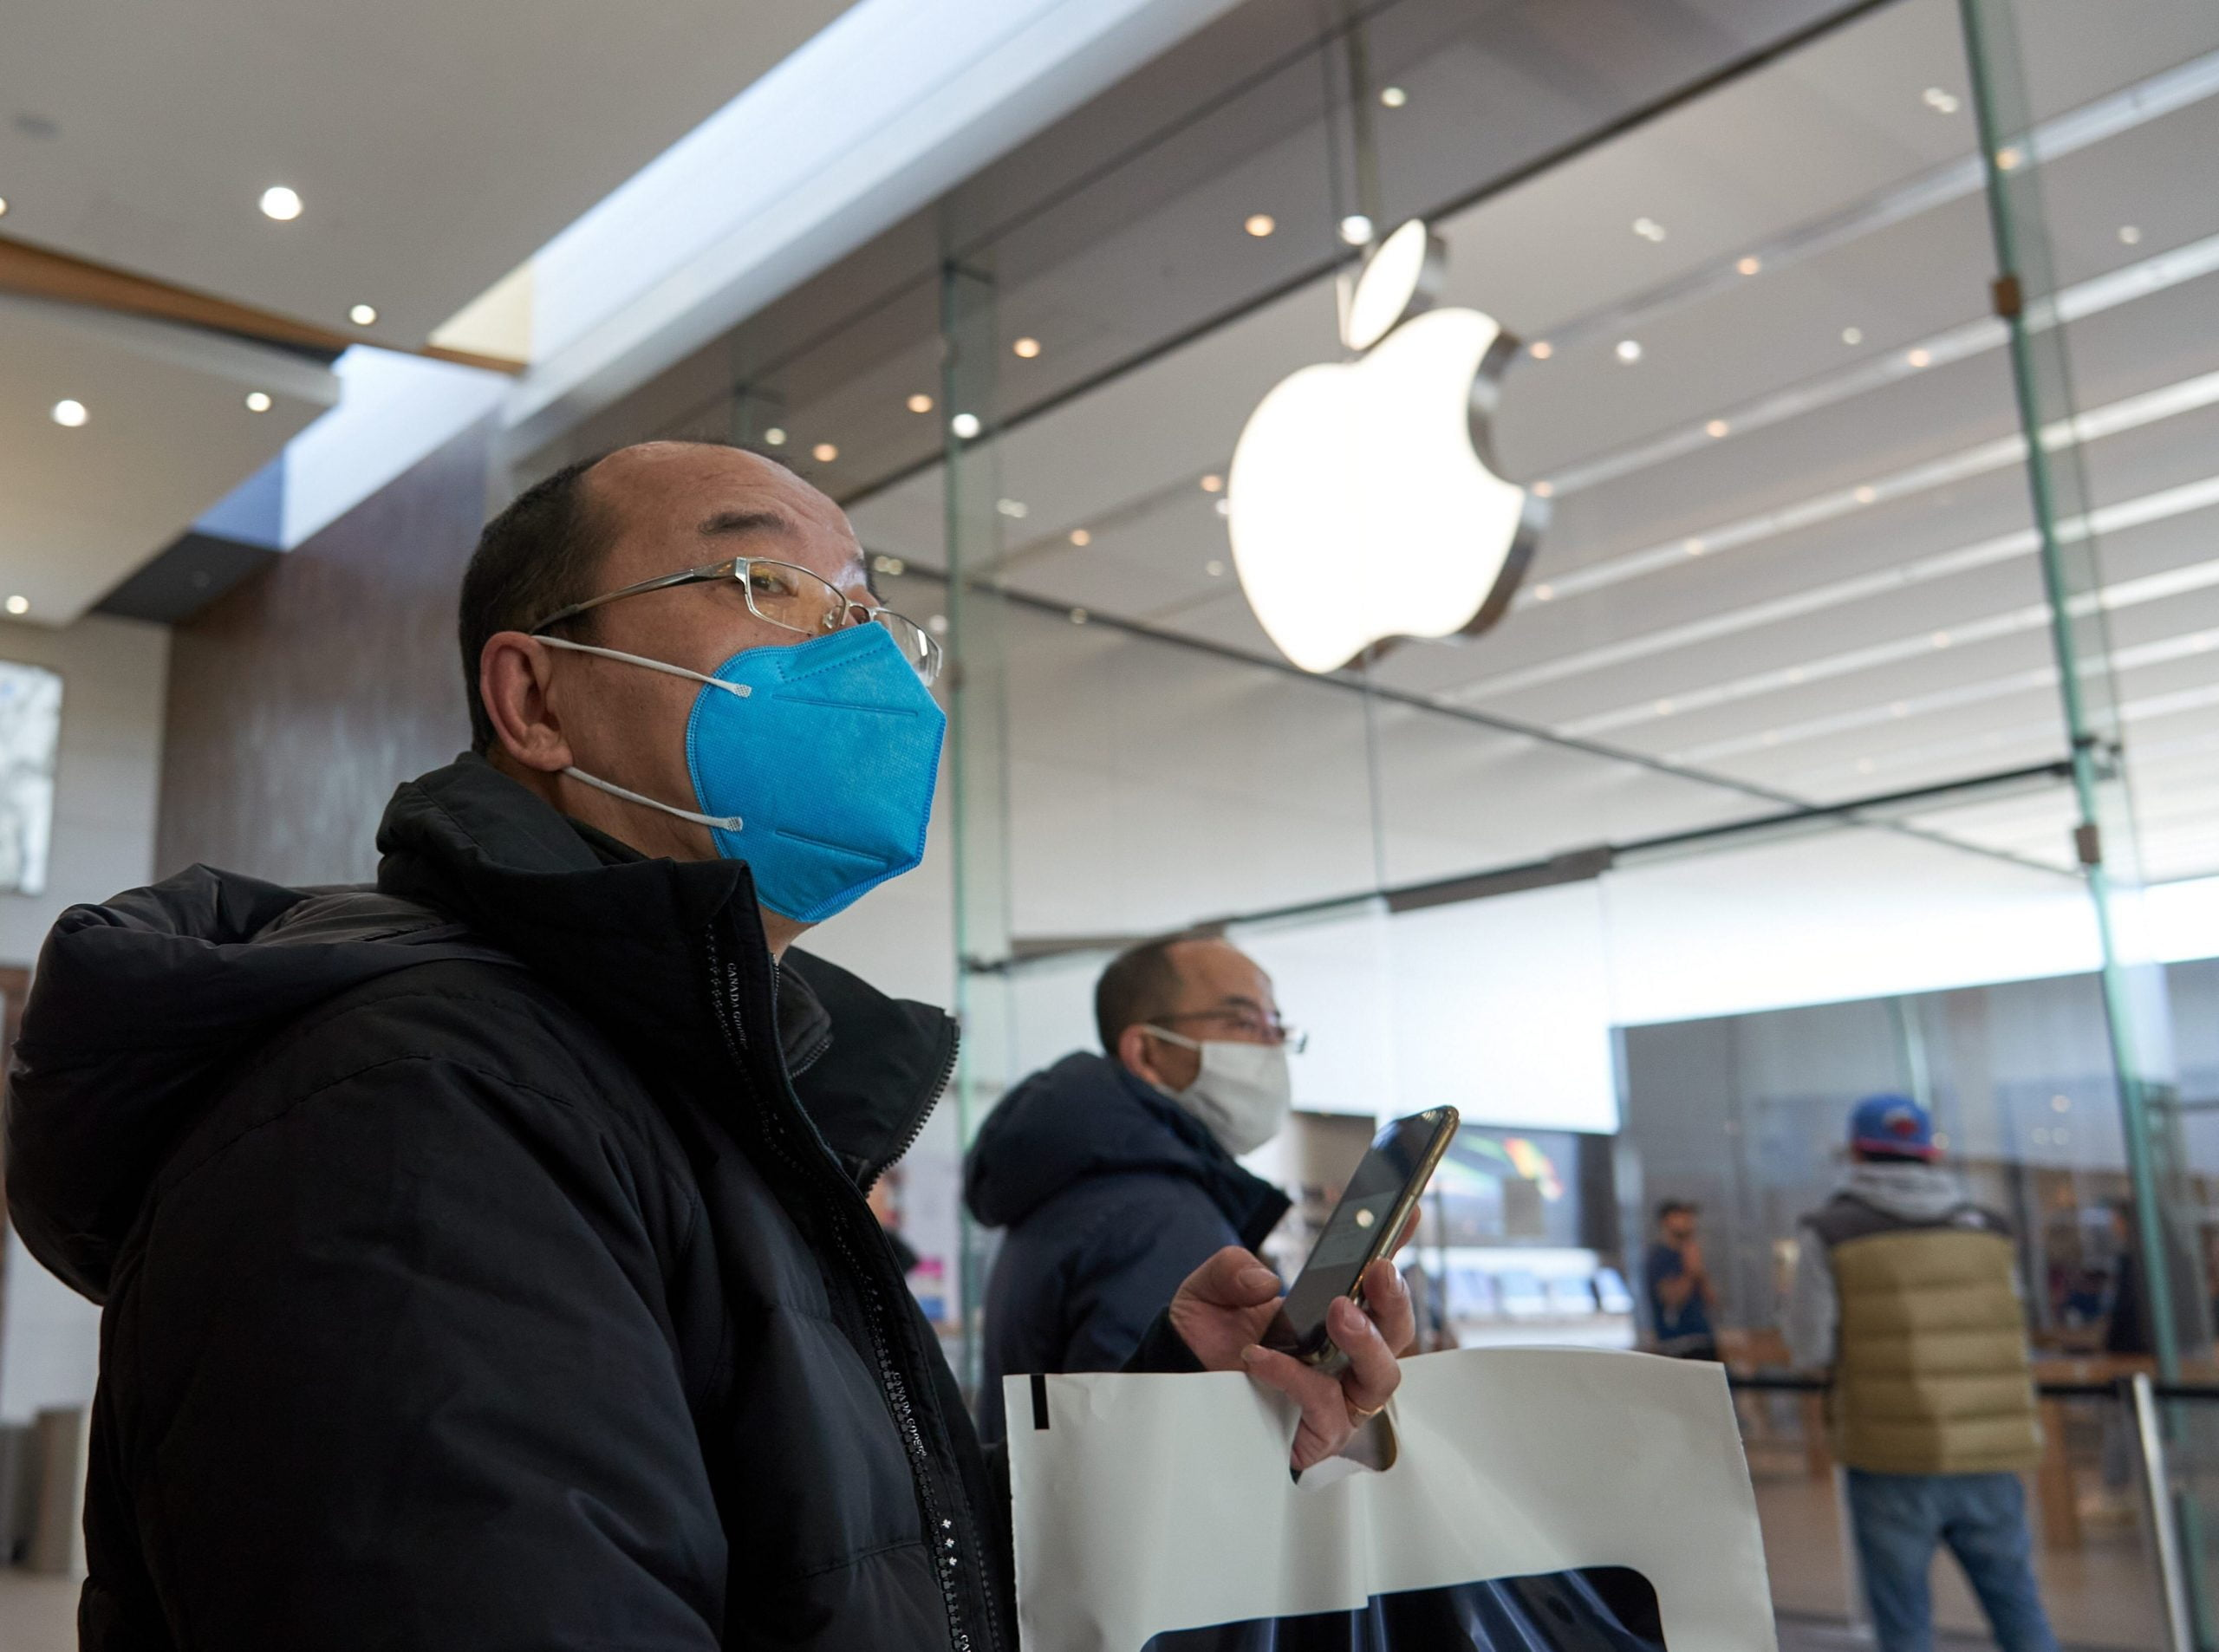 Apple reports that it does not know when the Apple Store will reopen